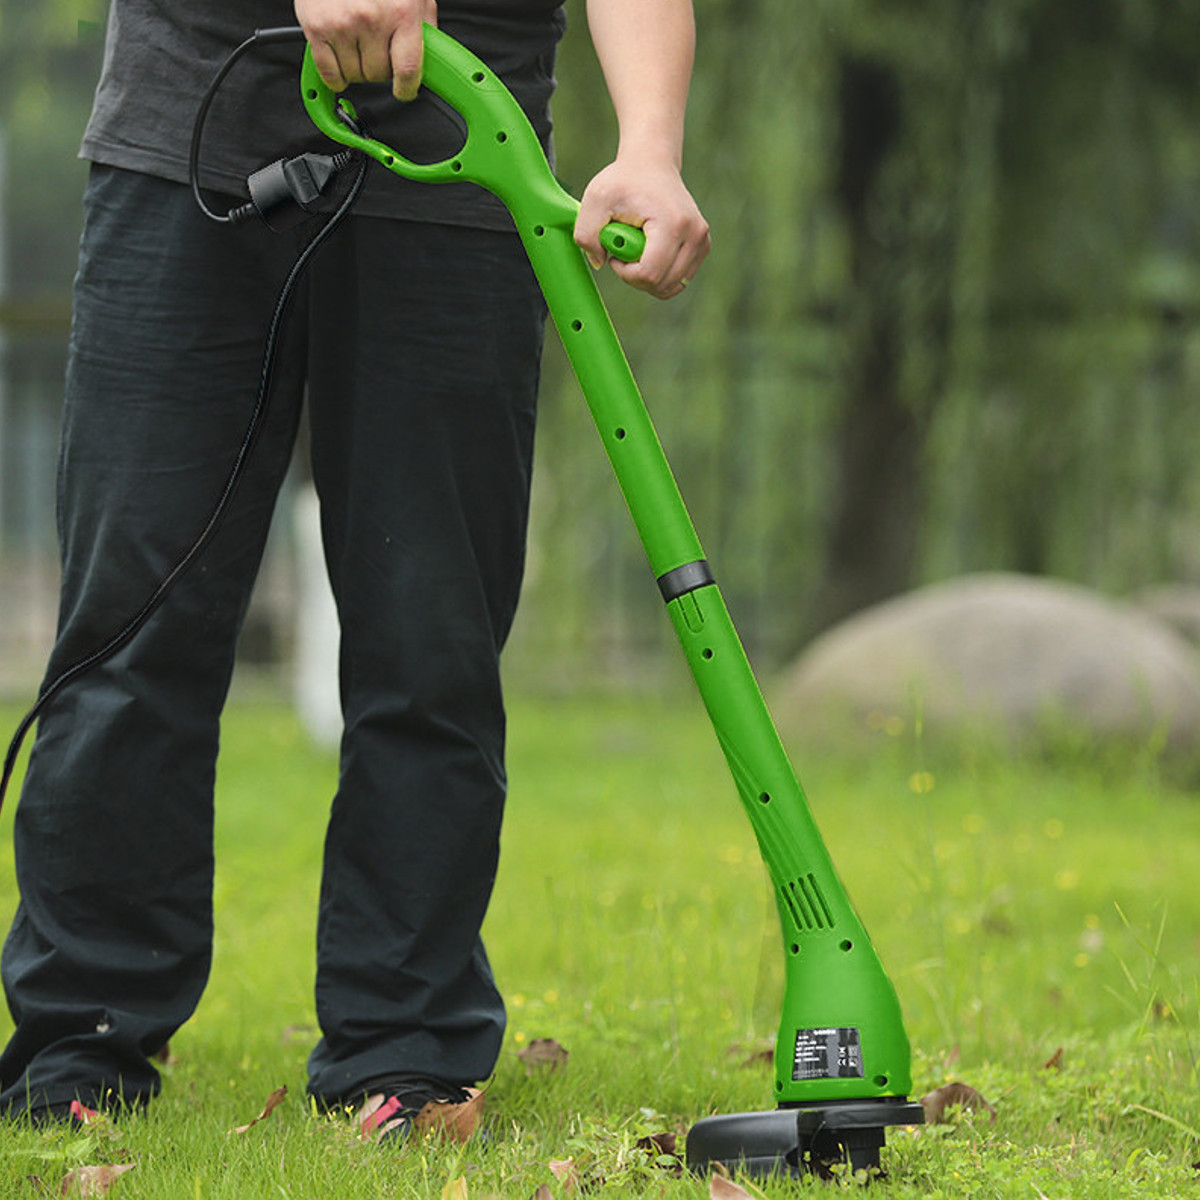 Foldable Electric Grass Trimmer Strimmer Cutter Lawnmower Heavy Duty Lawn Pruning